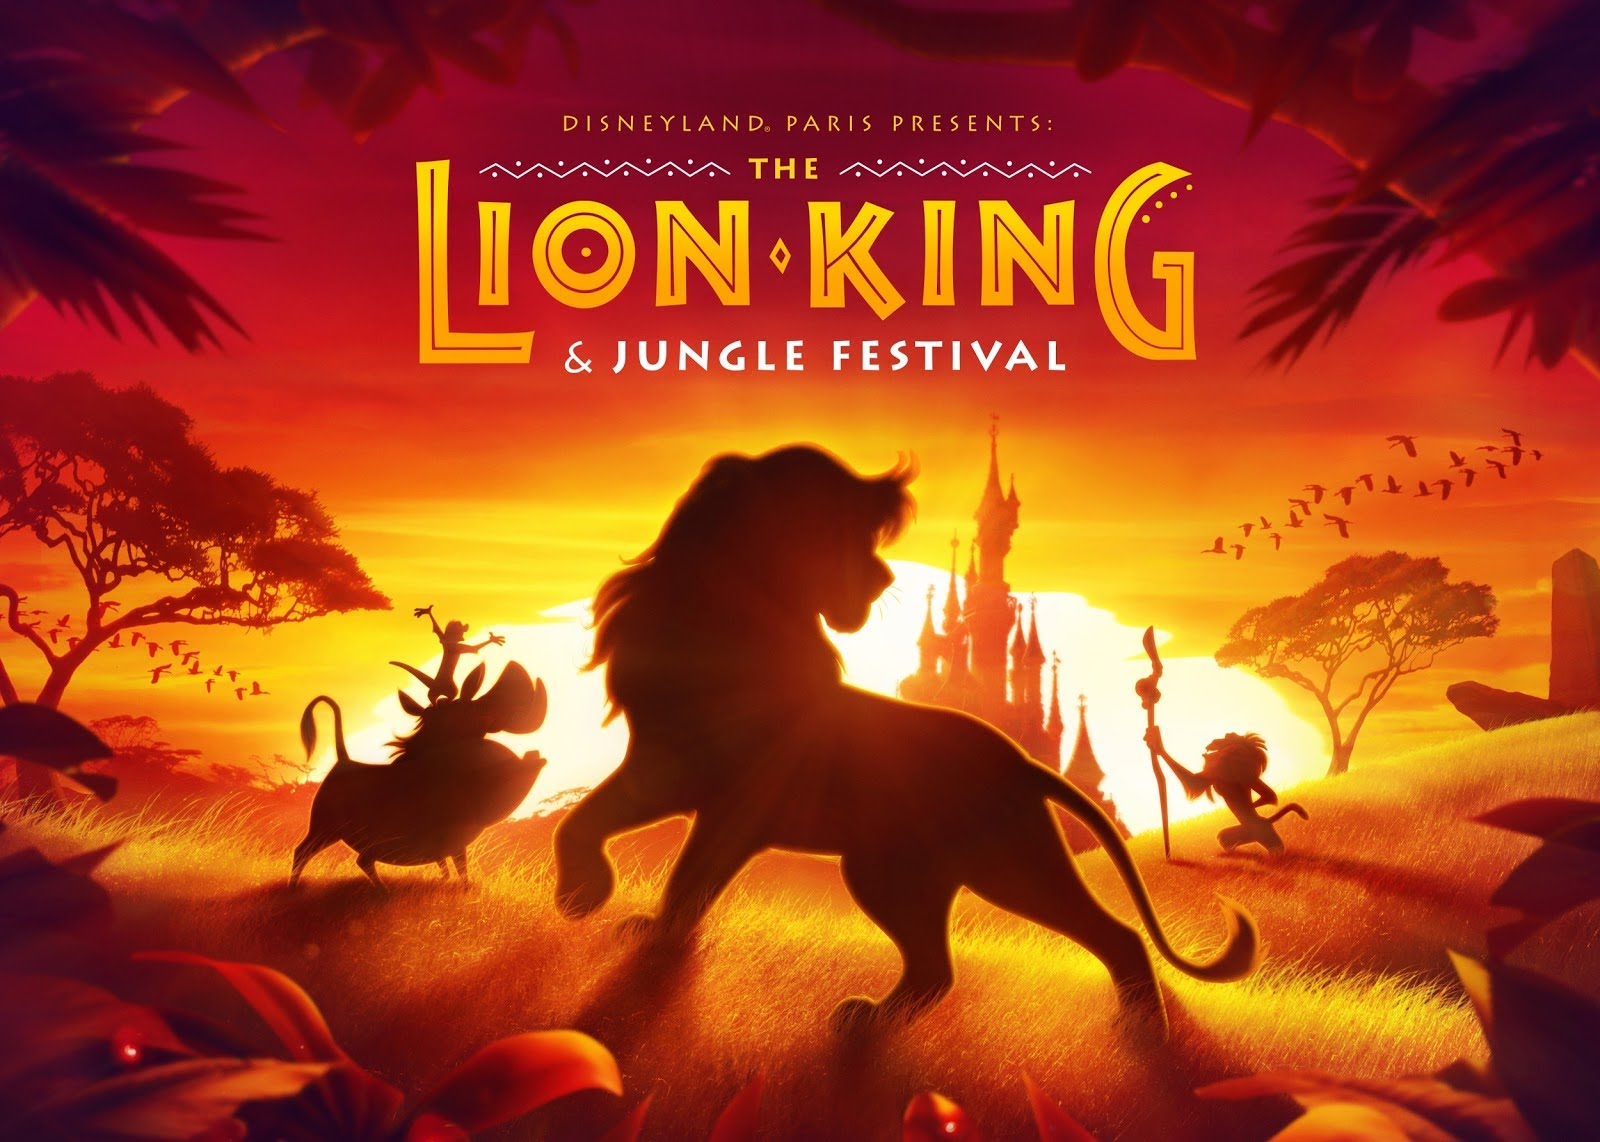 Festival of the Lion King and the Jungle Book DIsneyland Paris 2019